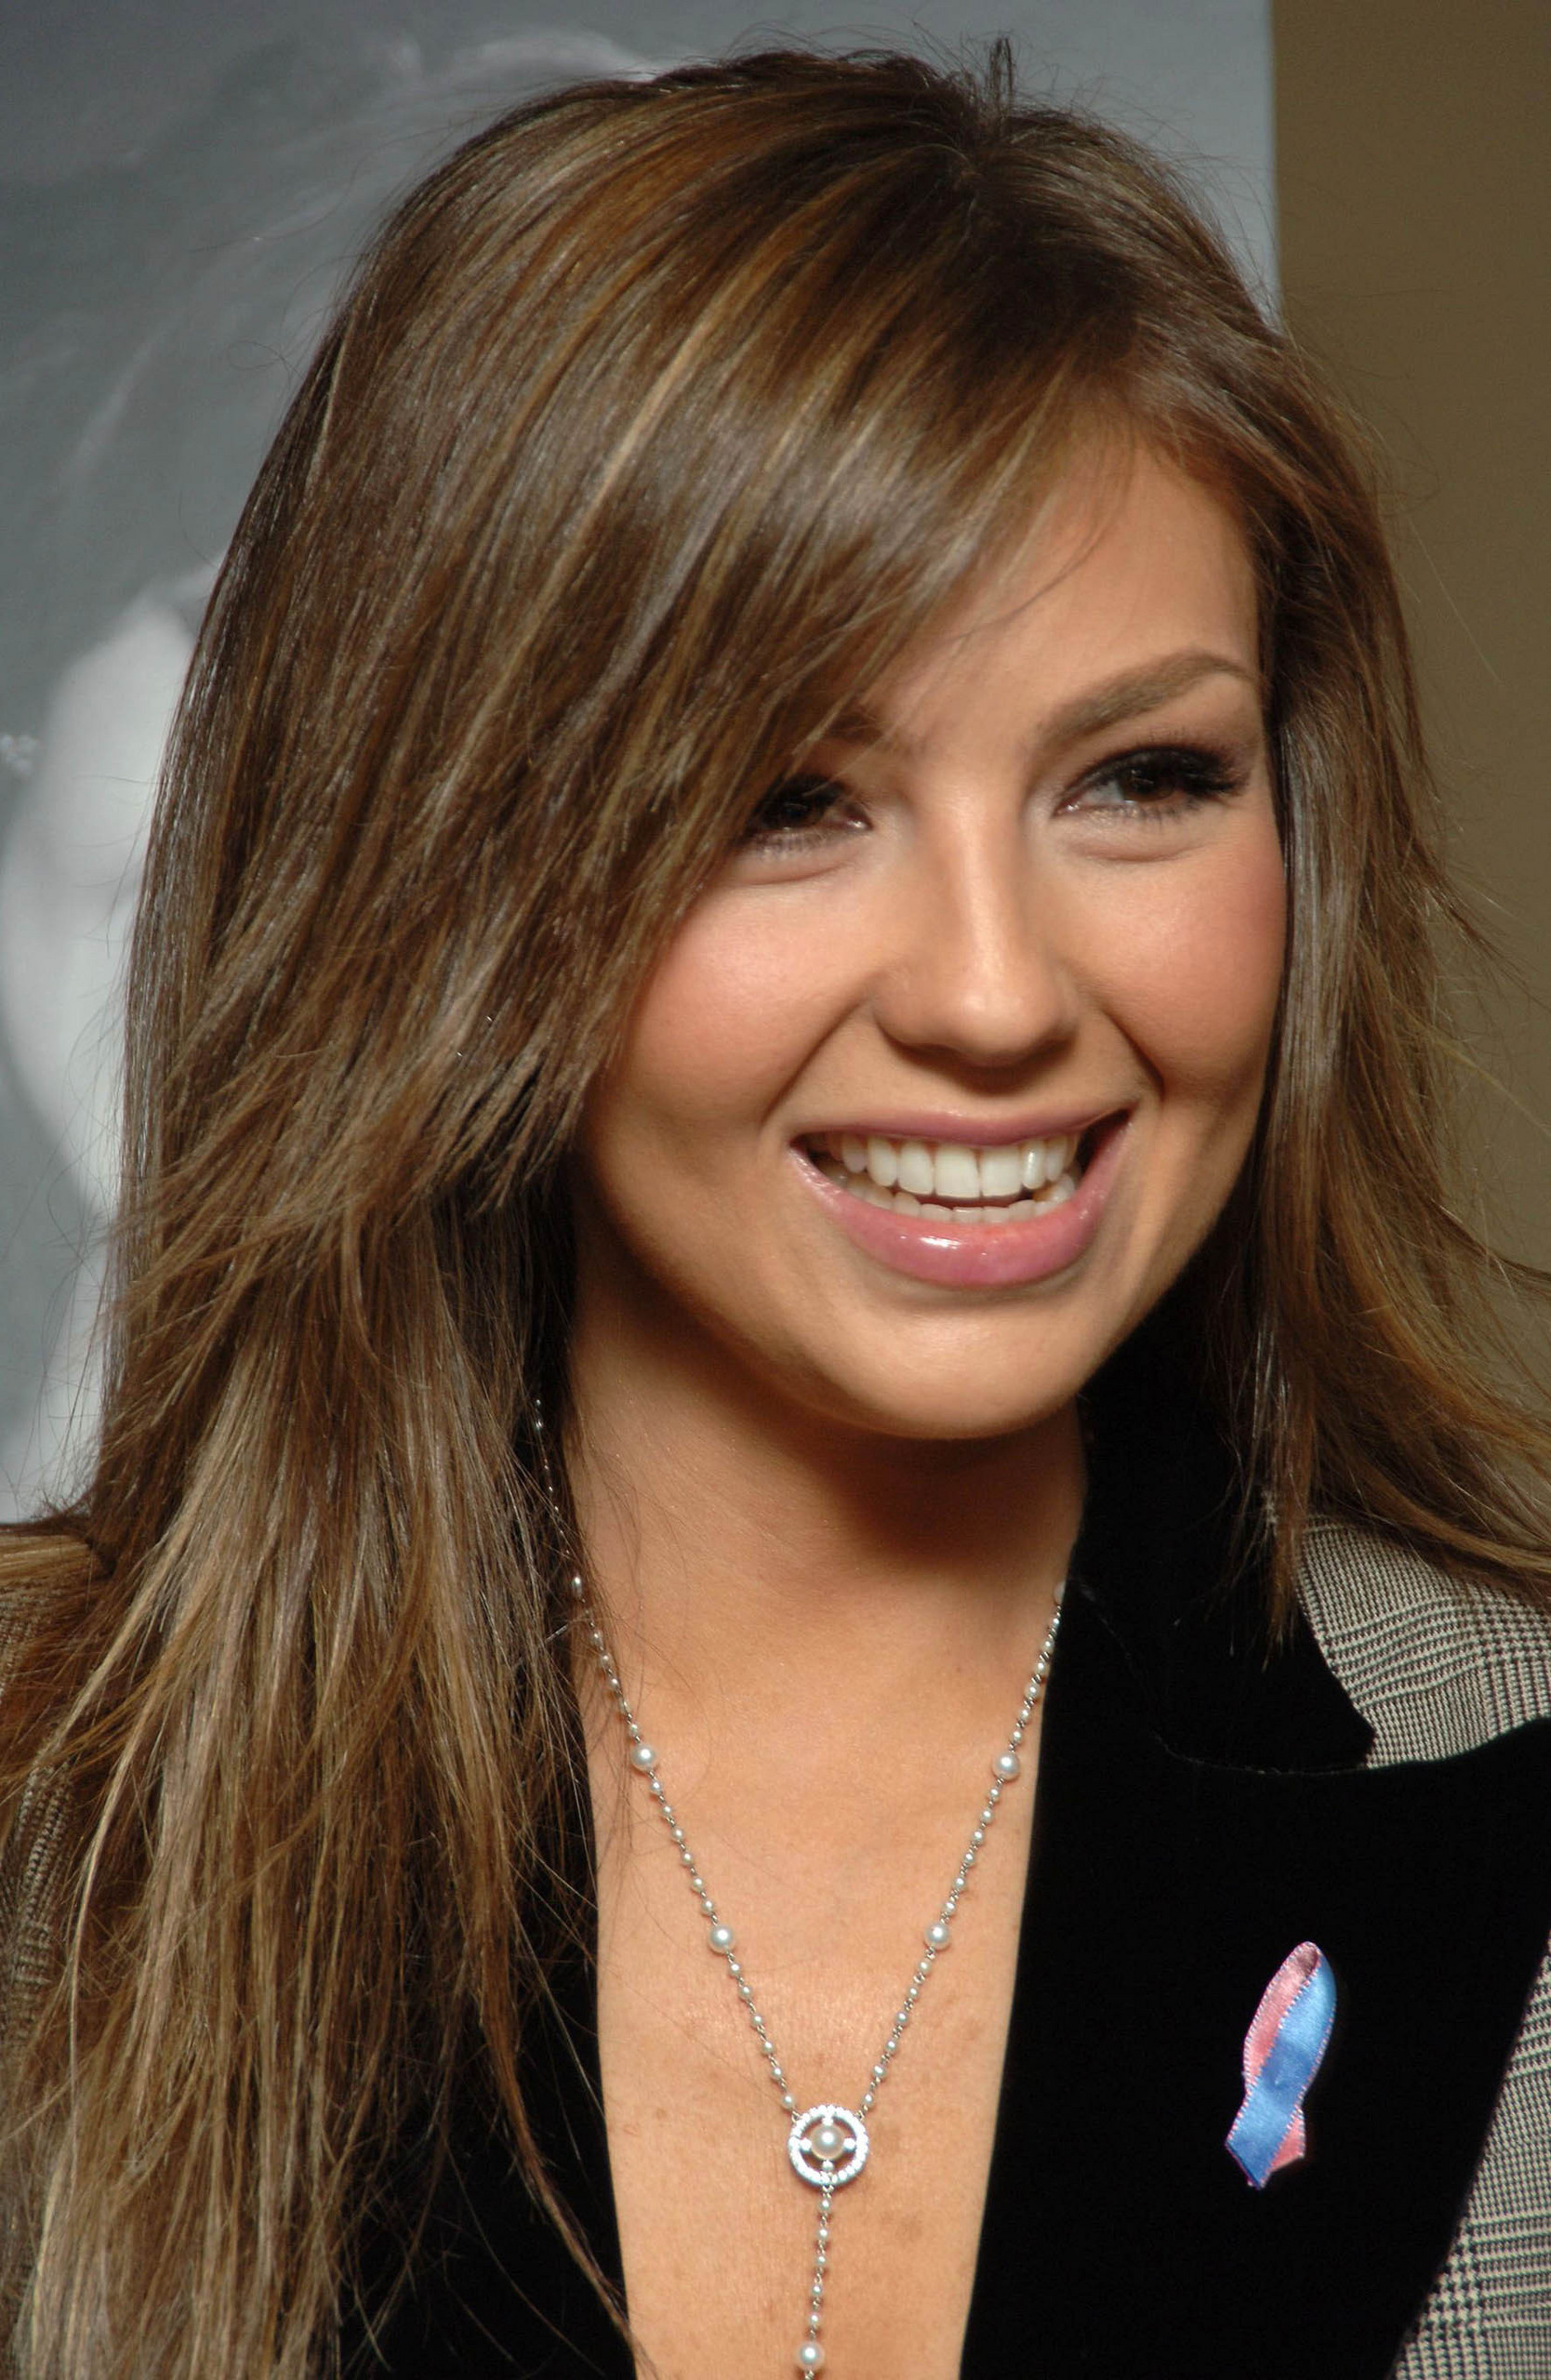 https://i0.wp.com/images2.fanpop.com/images/photos/6700000/Thalia-thalia-6708821-1668-2560.jpg